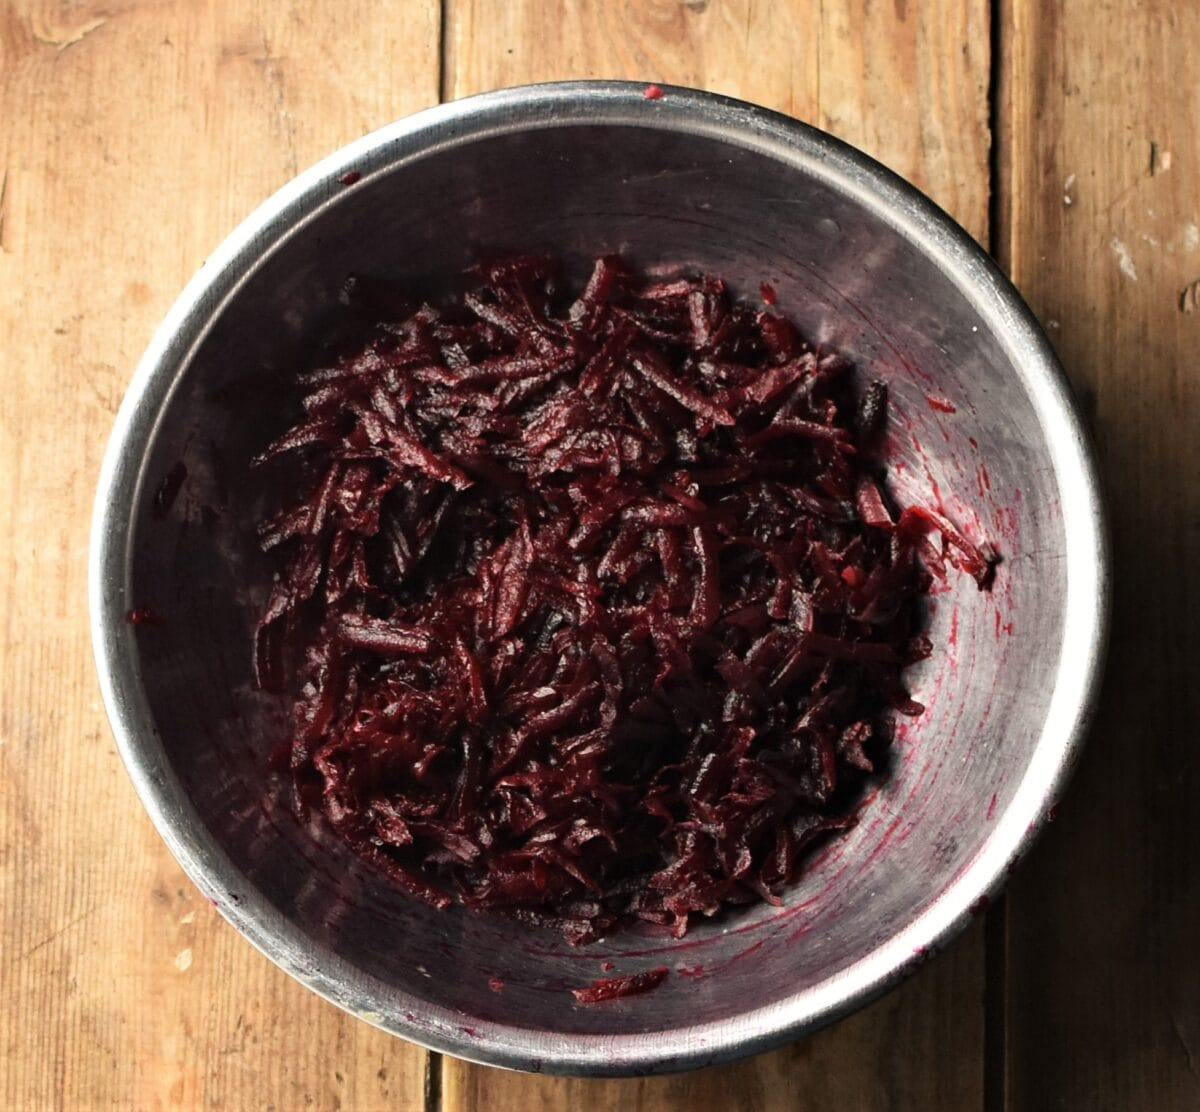 Grated beetroot in metal bowl.